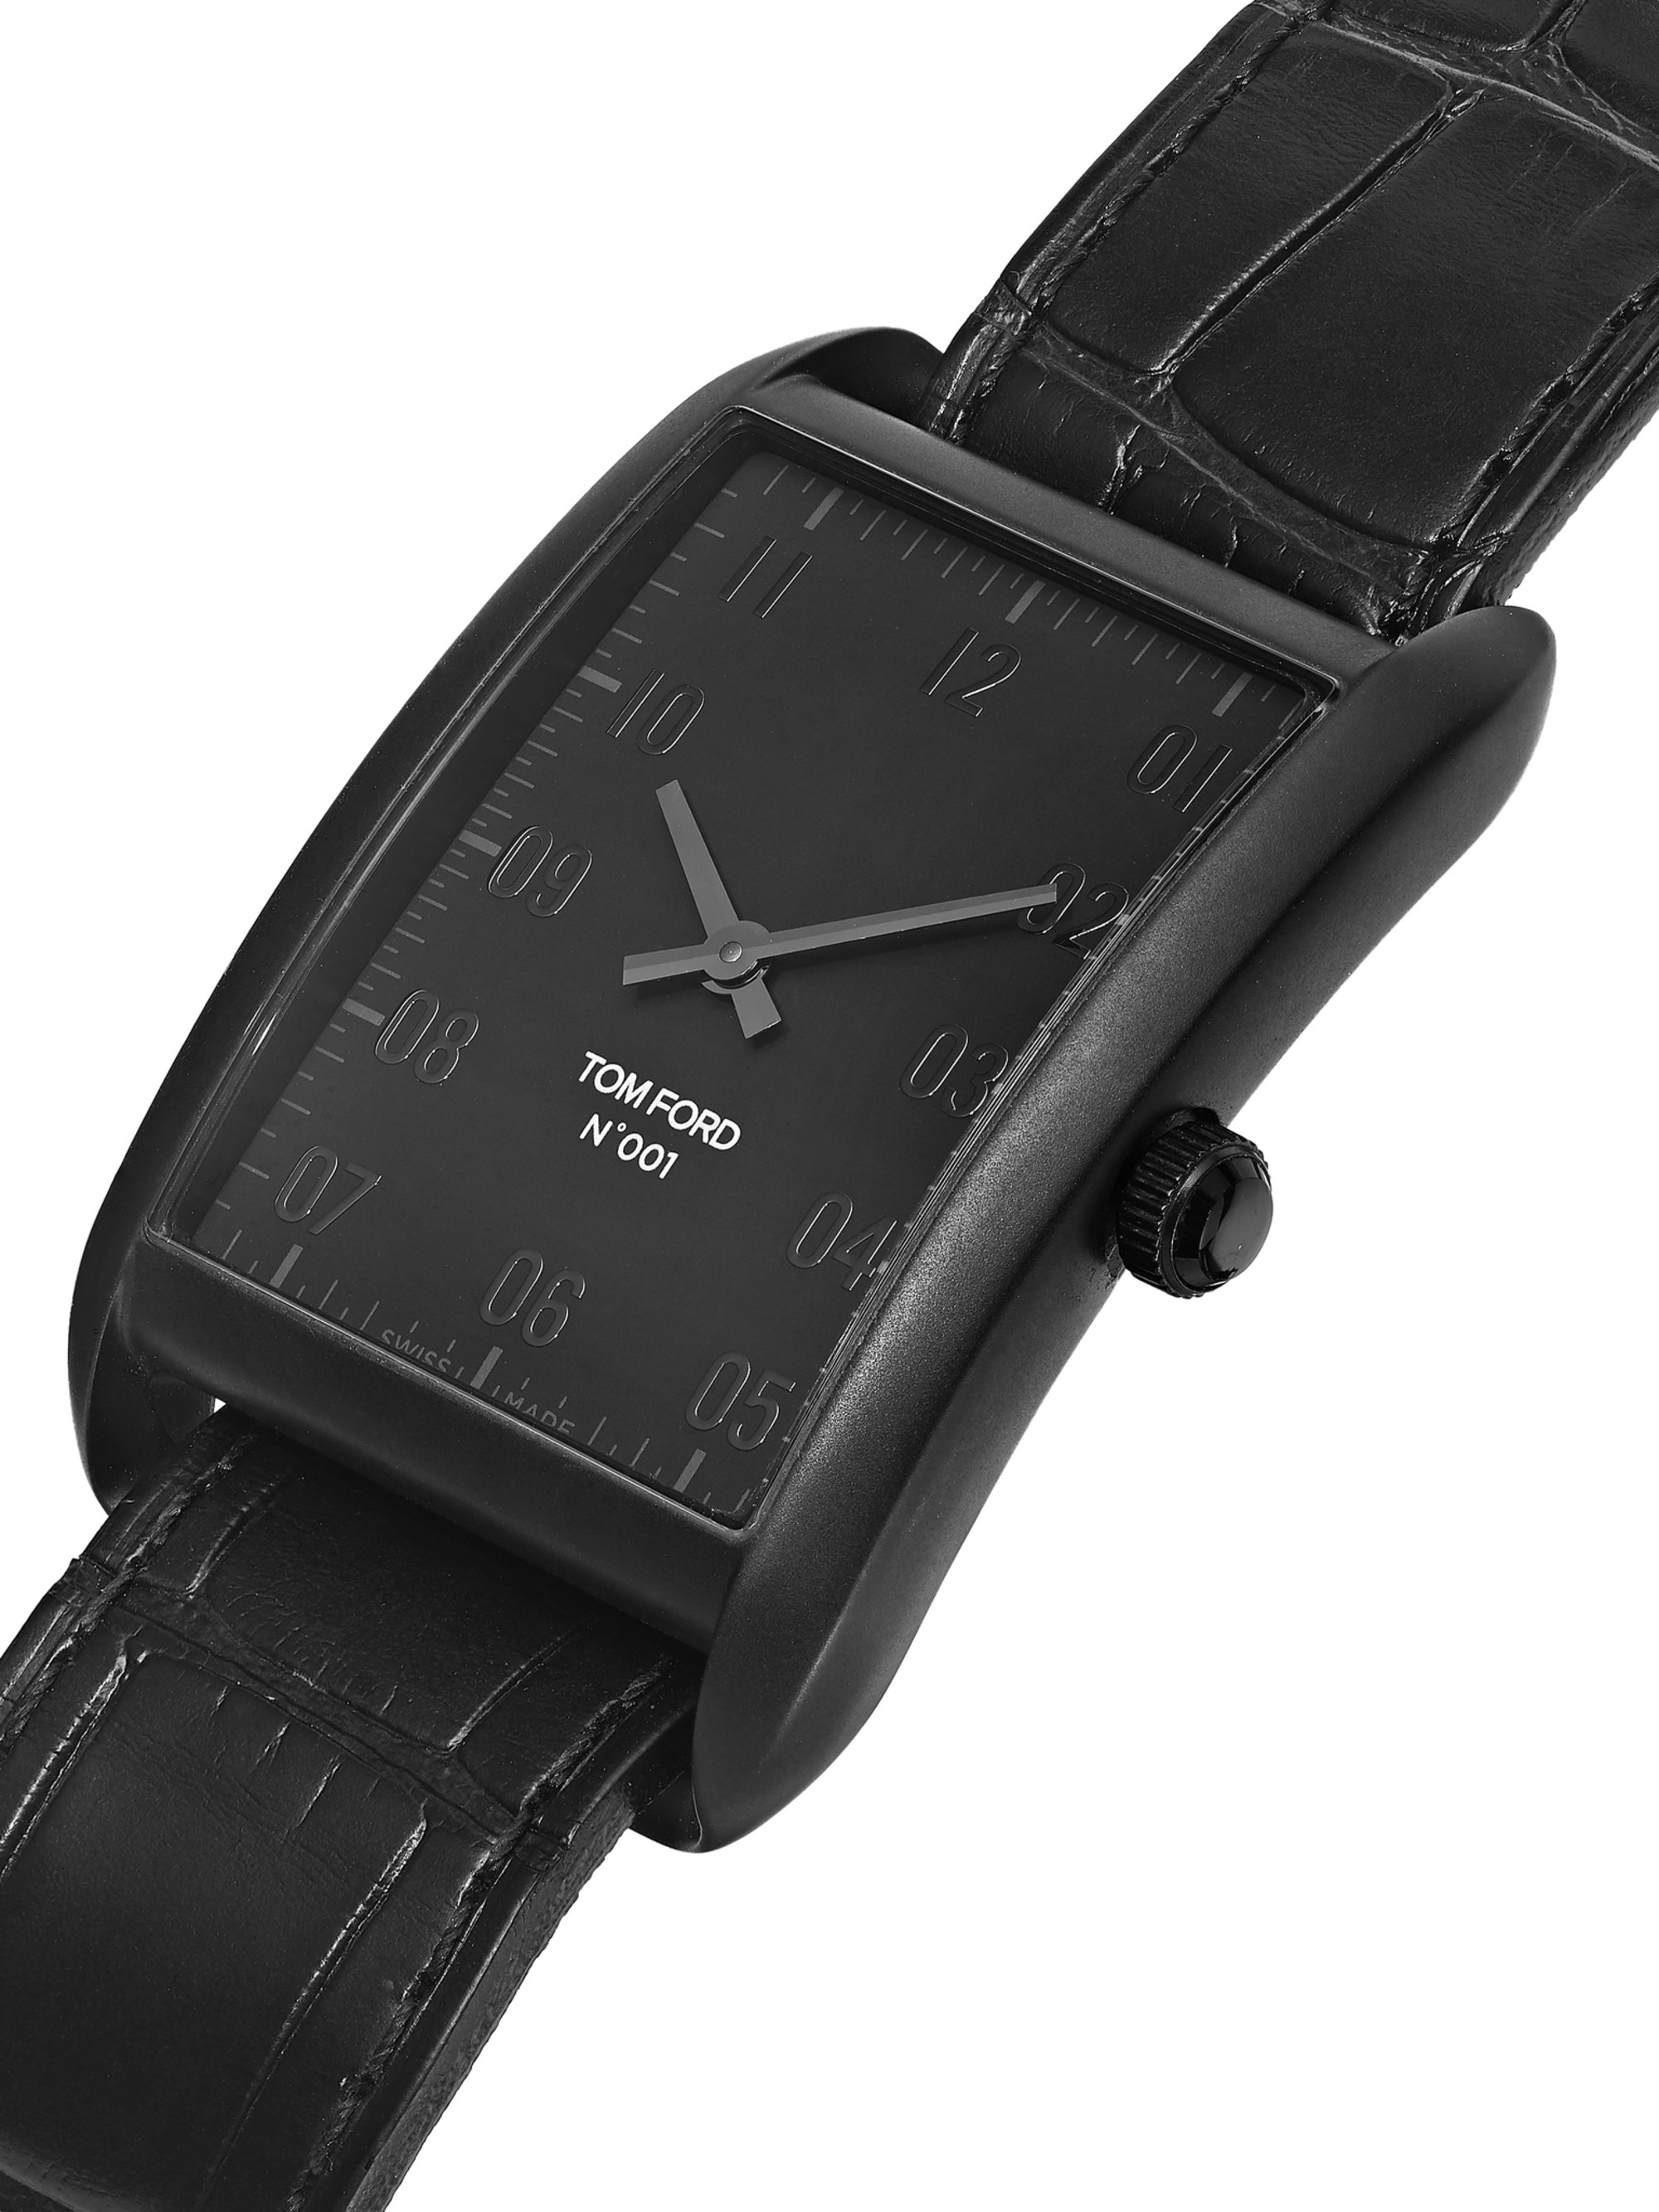 Tom Ford Timepieces Stainless Steel and Alligator Watch